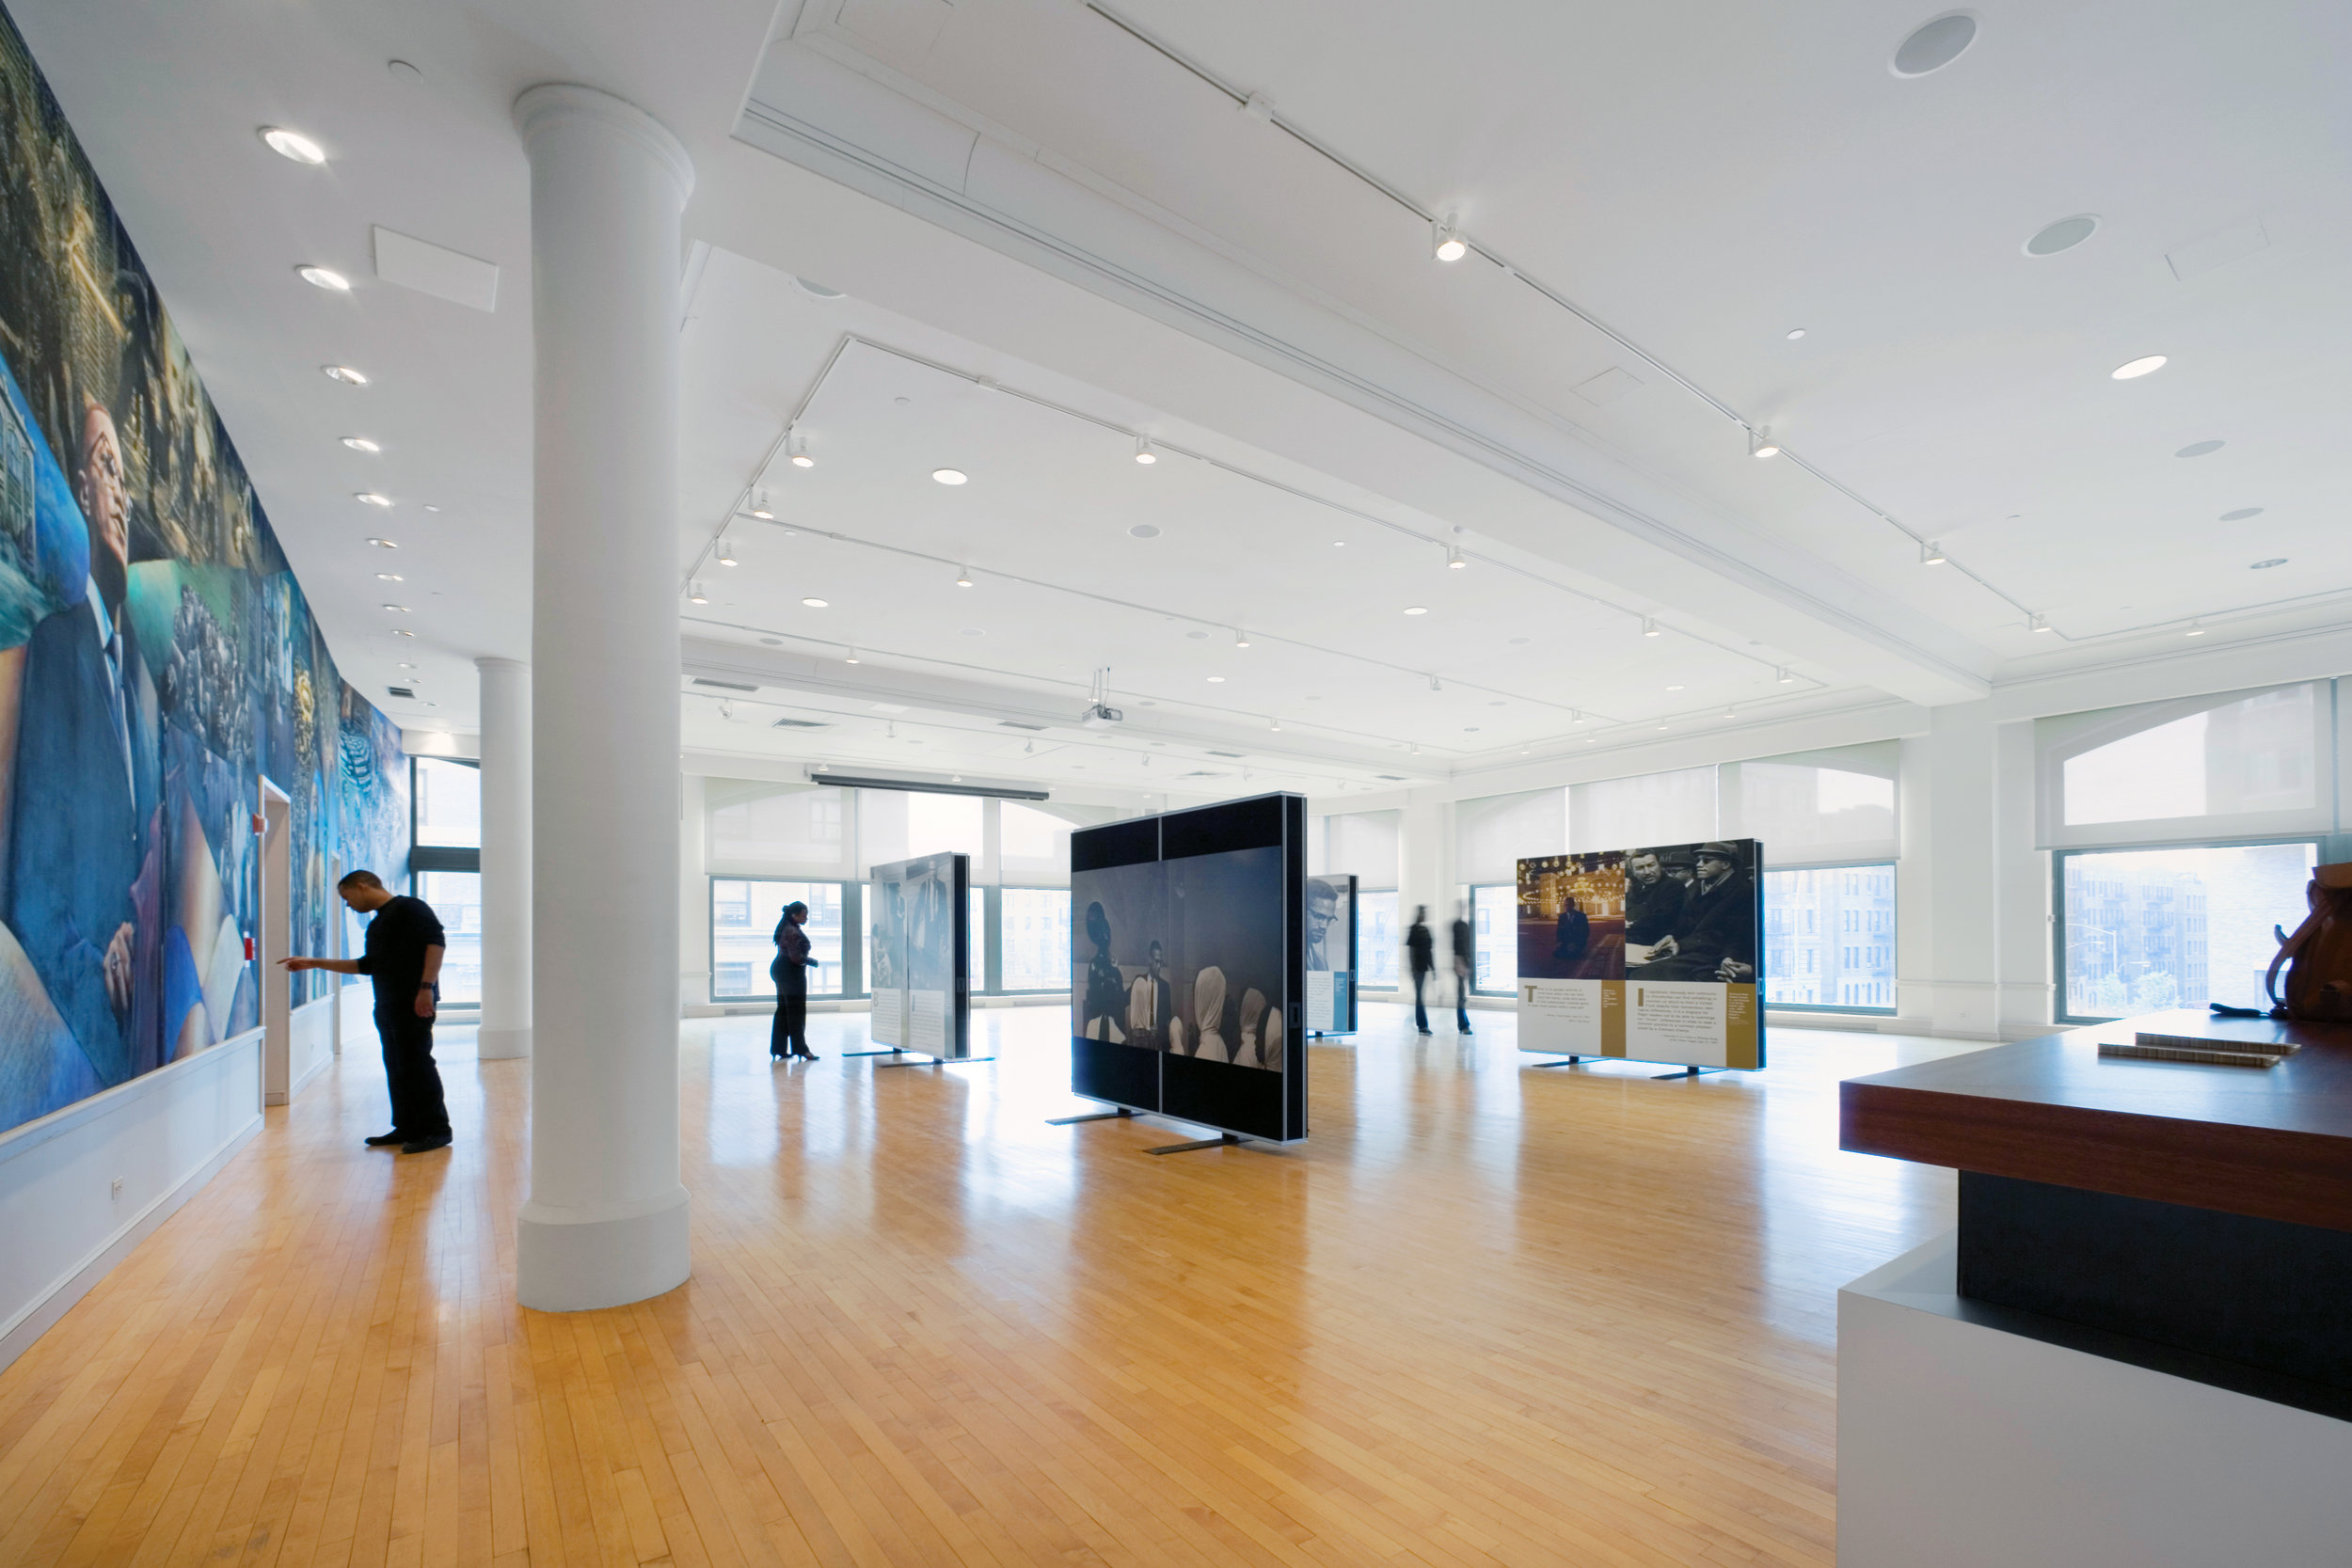 Malcolm X Memorial, Location: New York, NY, Architect: Davis Brody Bond, LLP